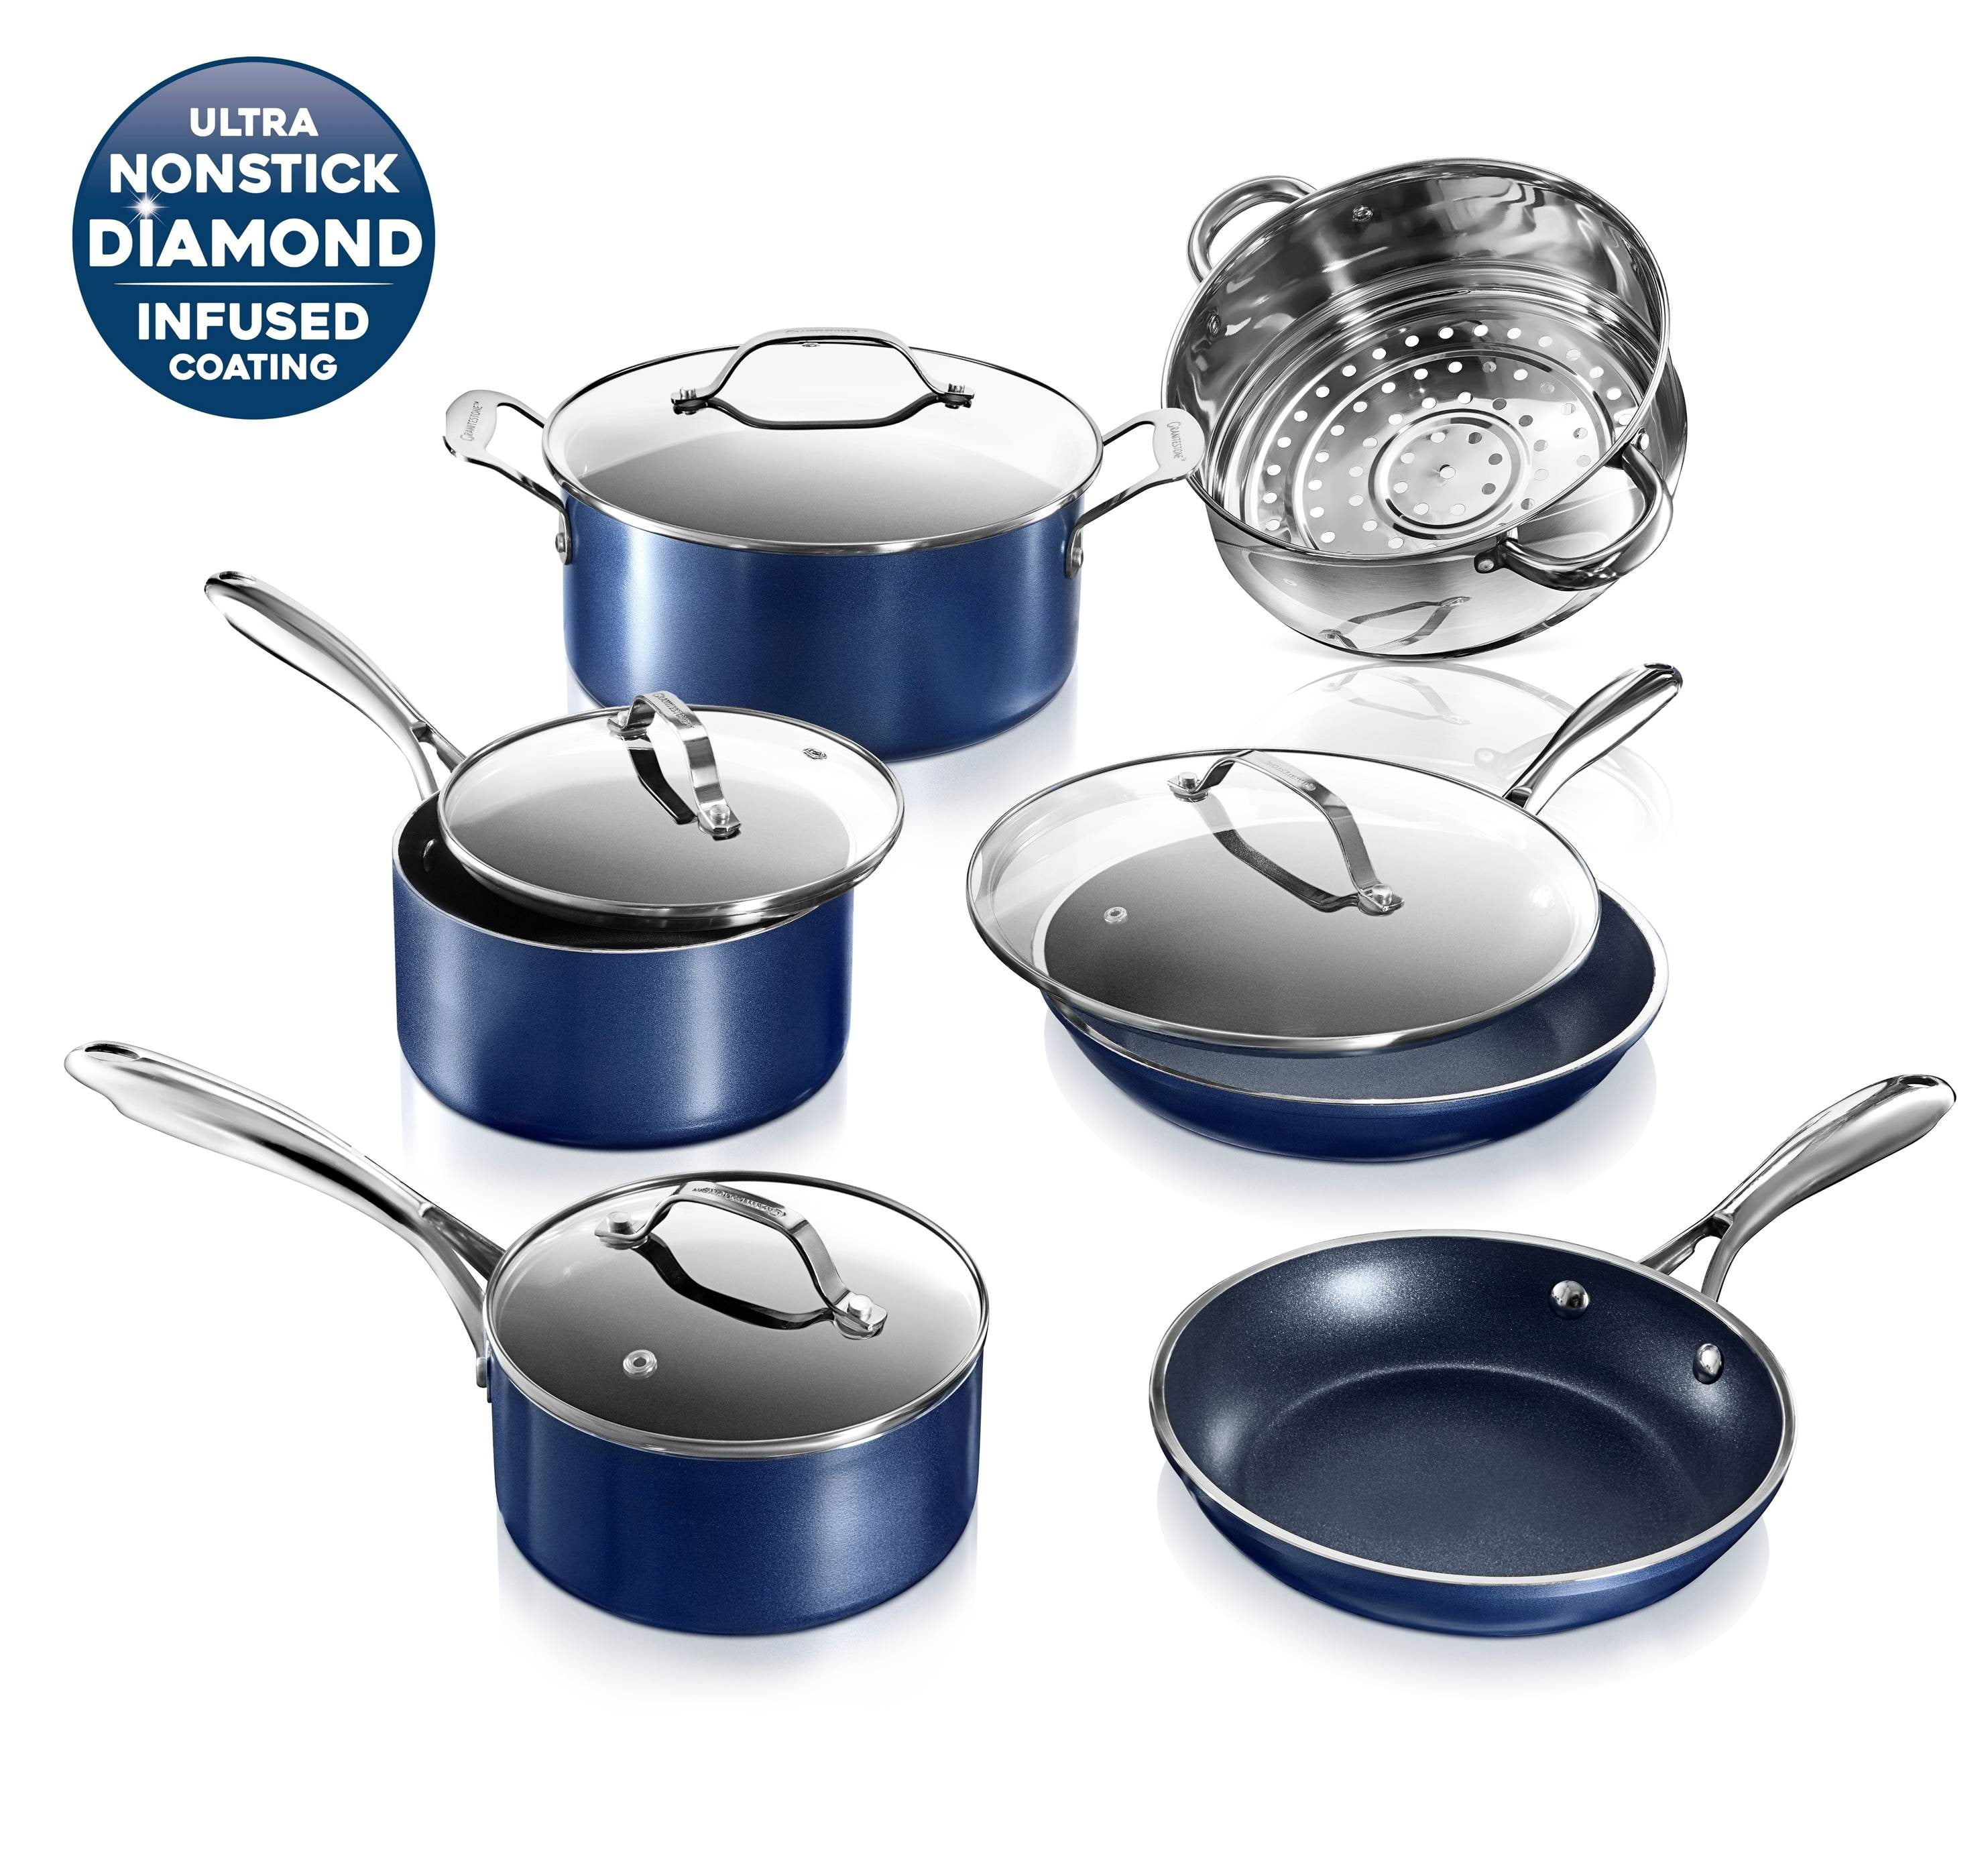 Granitestone Pots and Pans Set Blue 10 Piece Cookware Set with Ultra Nonstick Durable Mineral & Diamond Triple Coated Surface, Stainless Steel Stay Cool Handles, Oven & Dishwasher Safe, As Seen on TV